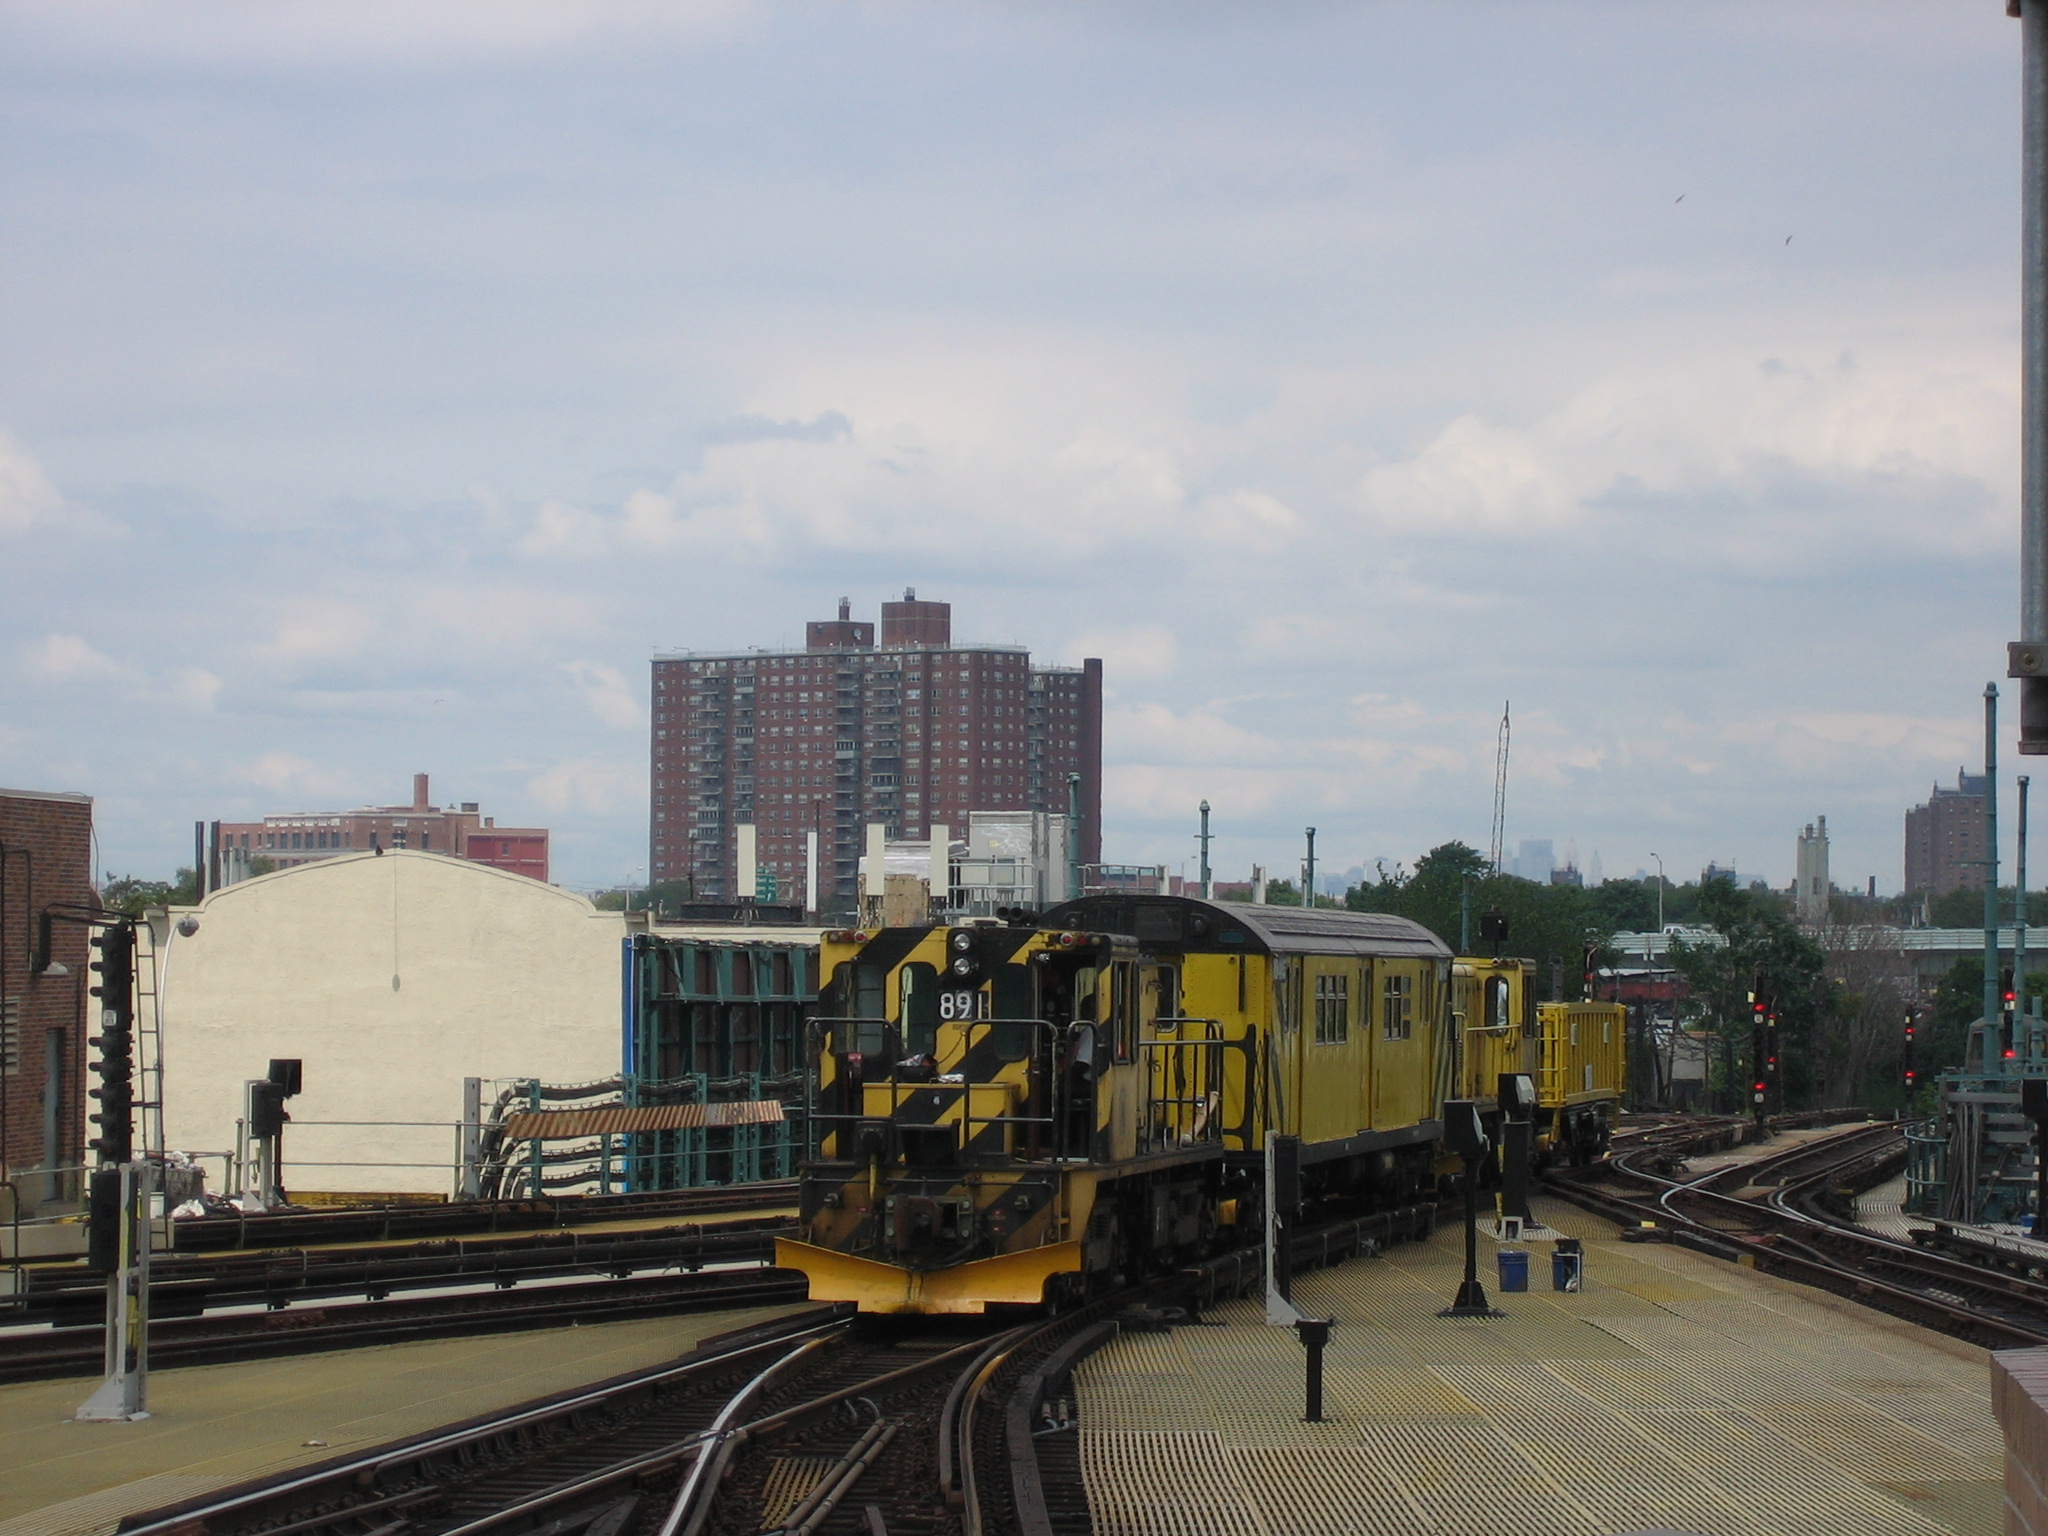 (746k, 2048x1536)<br><b>Country:</b> United States<br><b>City:</b> New York<br><b>System:</b> New York City Transit<br><b>Location:</b> Coney Island/Stillwell Avenue<br><b>Route:</b> Work Service<br><b>Car:</b> R-77 Locomotive  891 <br><b>Photo by:</b> Michael Hodurski<br><b>Date:</b> 8/4/2006<br><b>Viewed (this week/total):</b> 3 / 1110